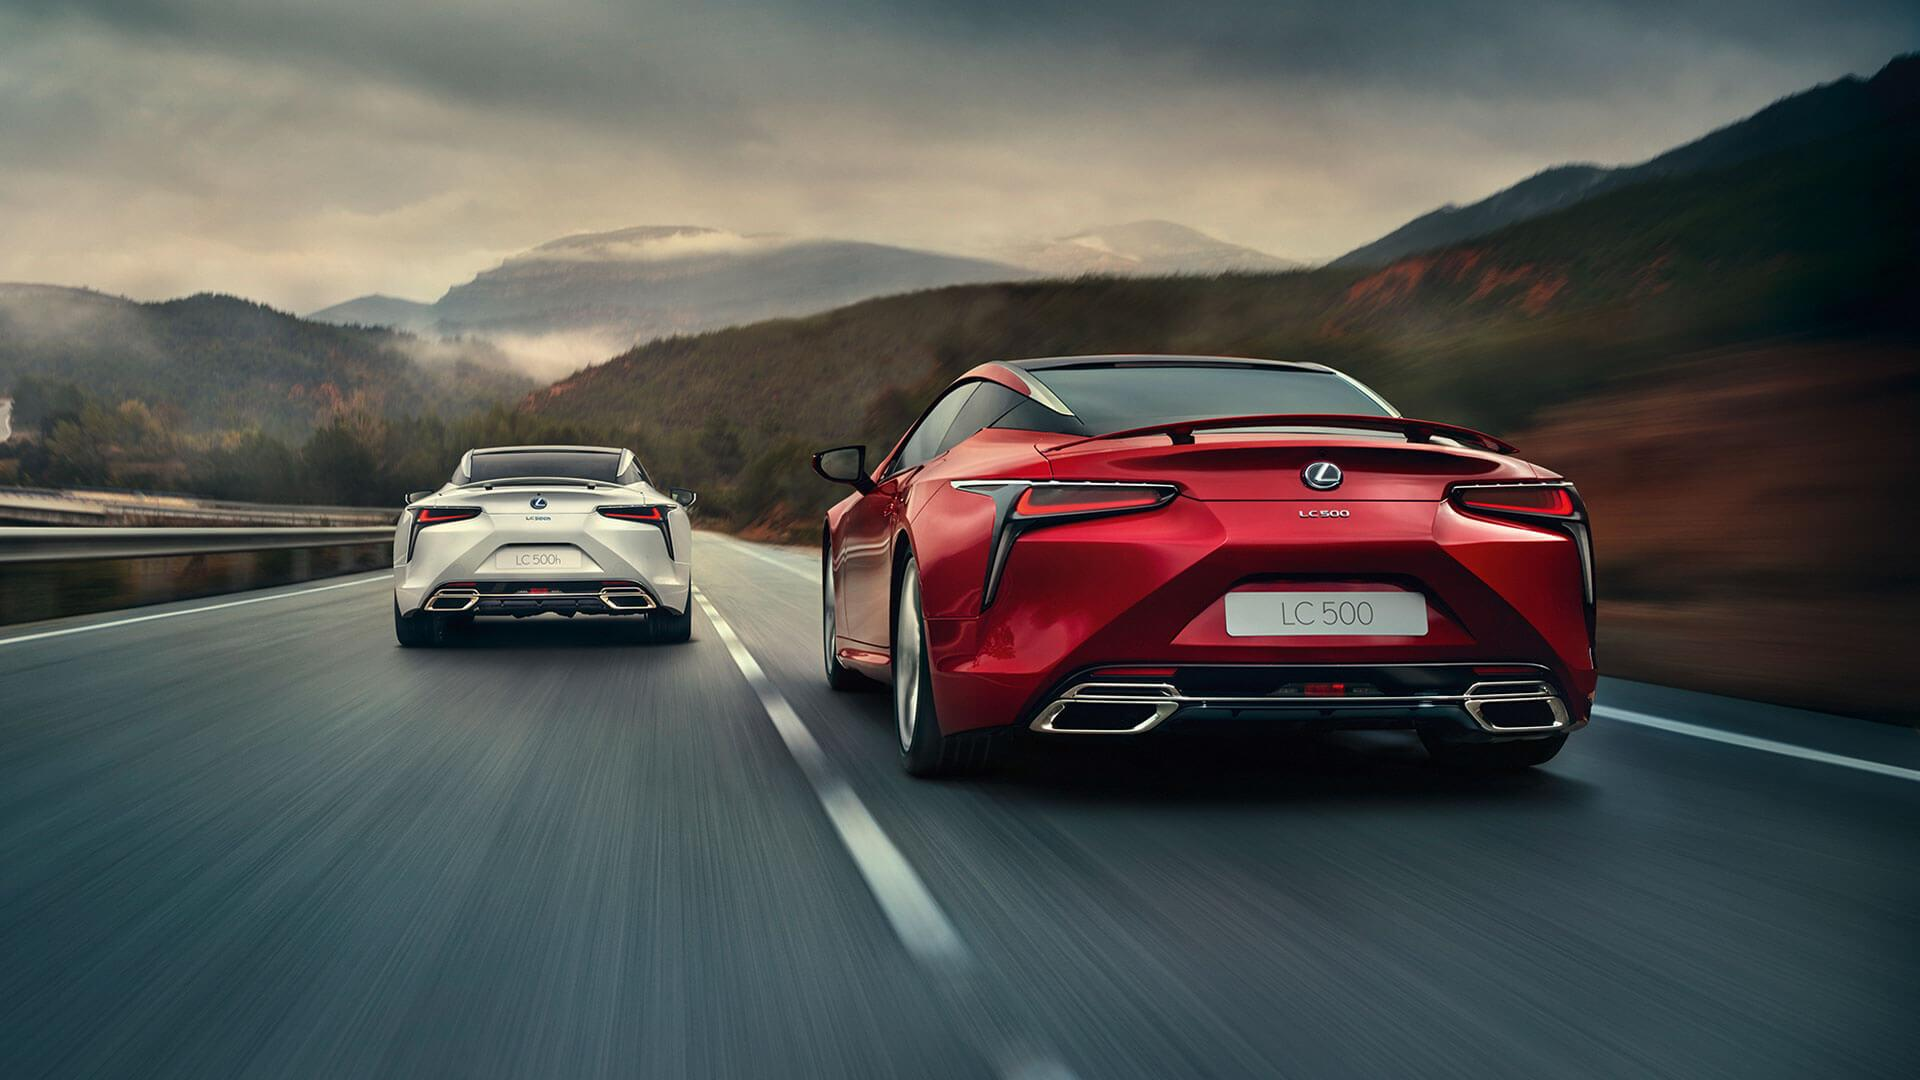 LC 500 & 500h | 2019 Performance Coupé | From £76,600 New | Lexus UK